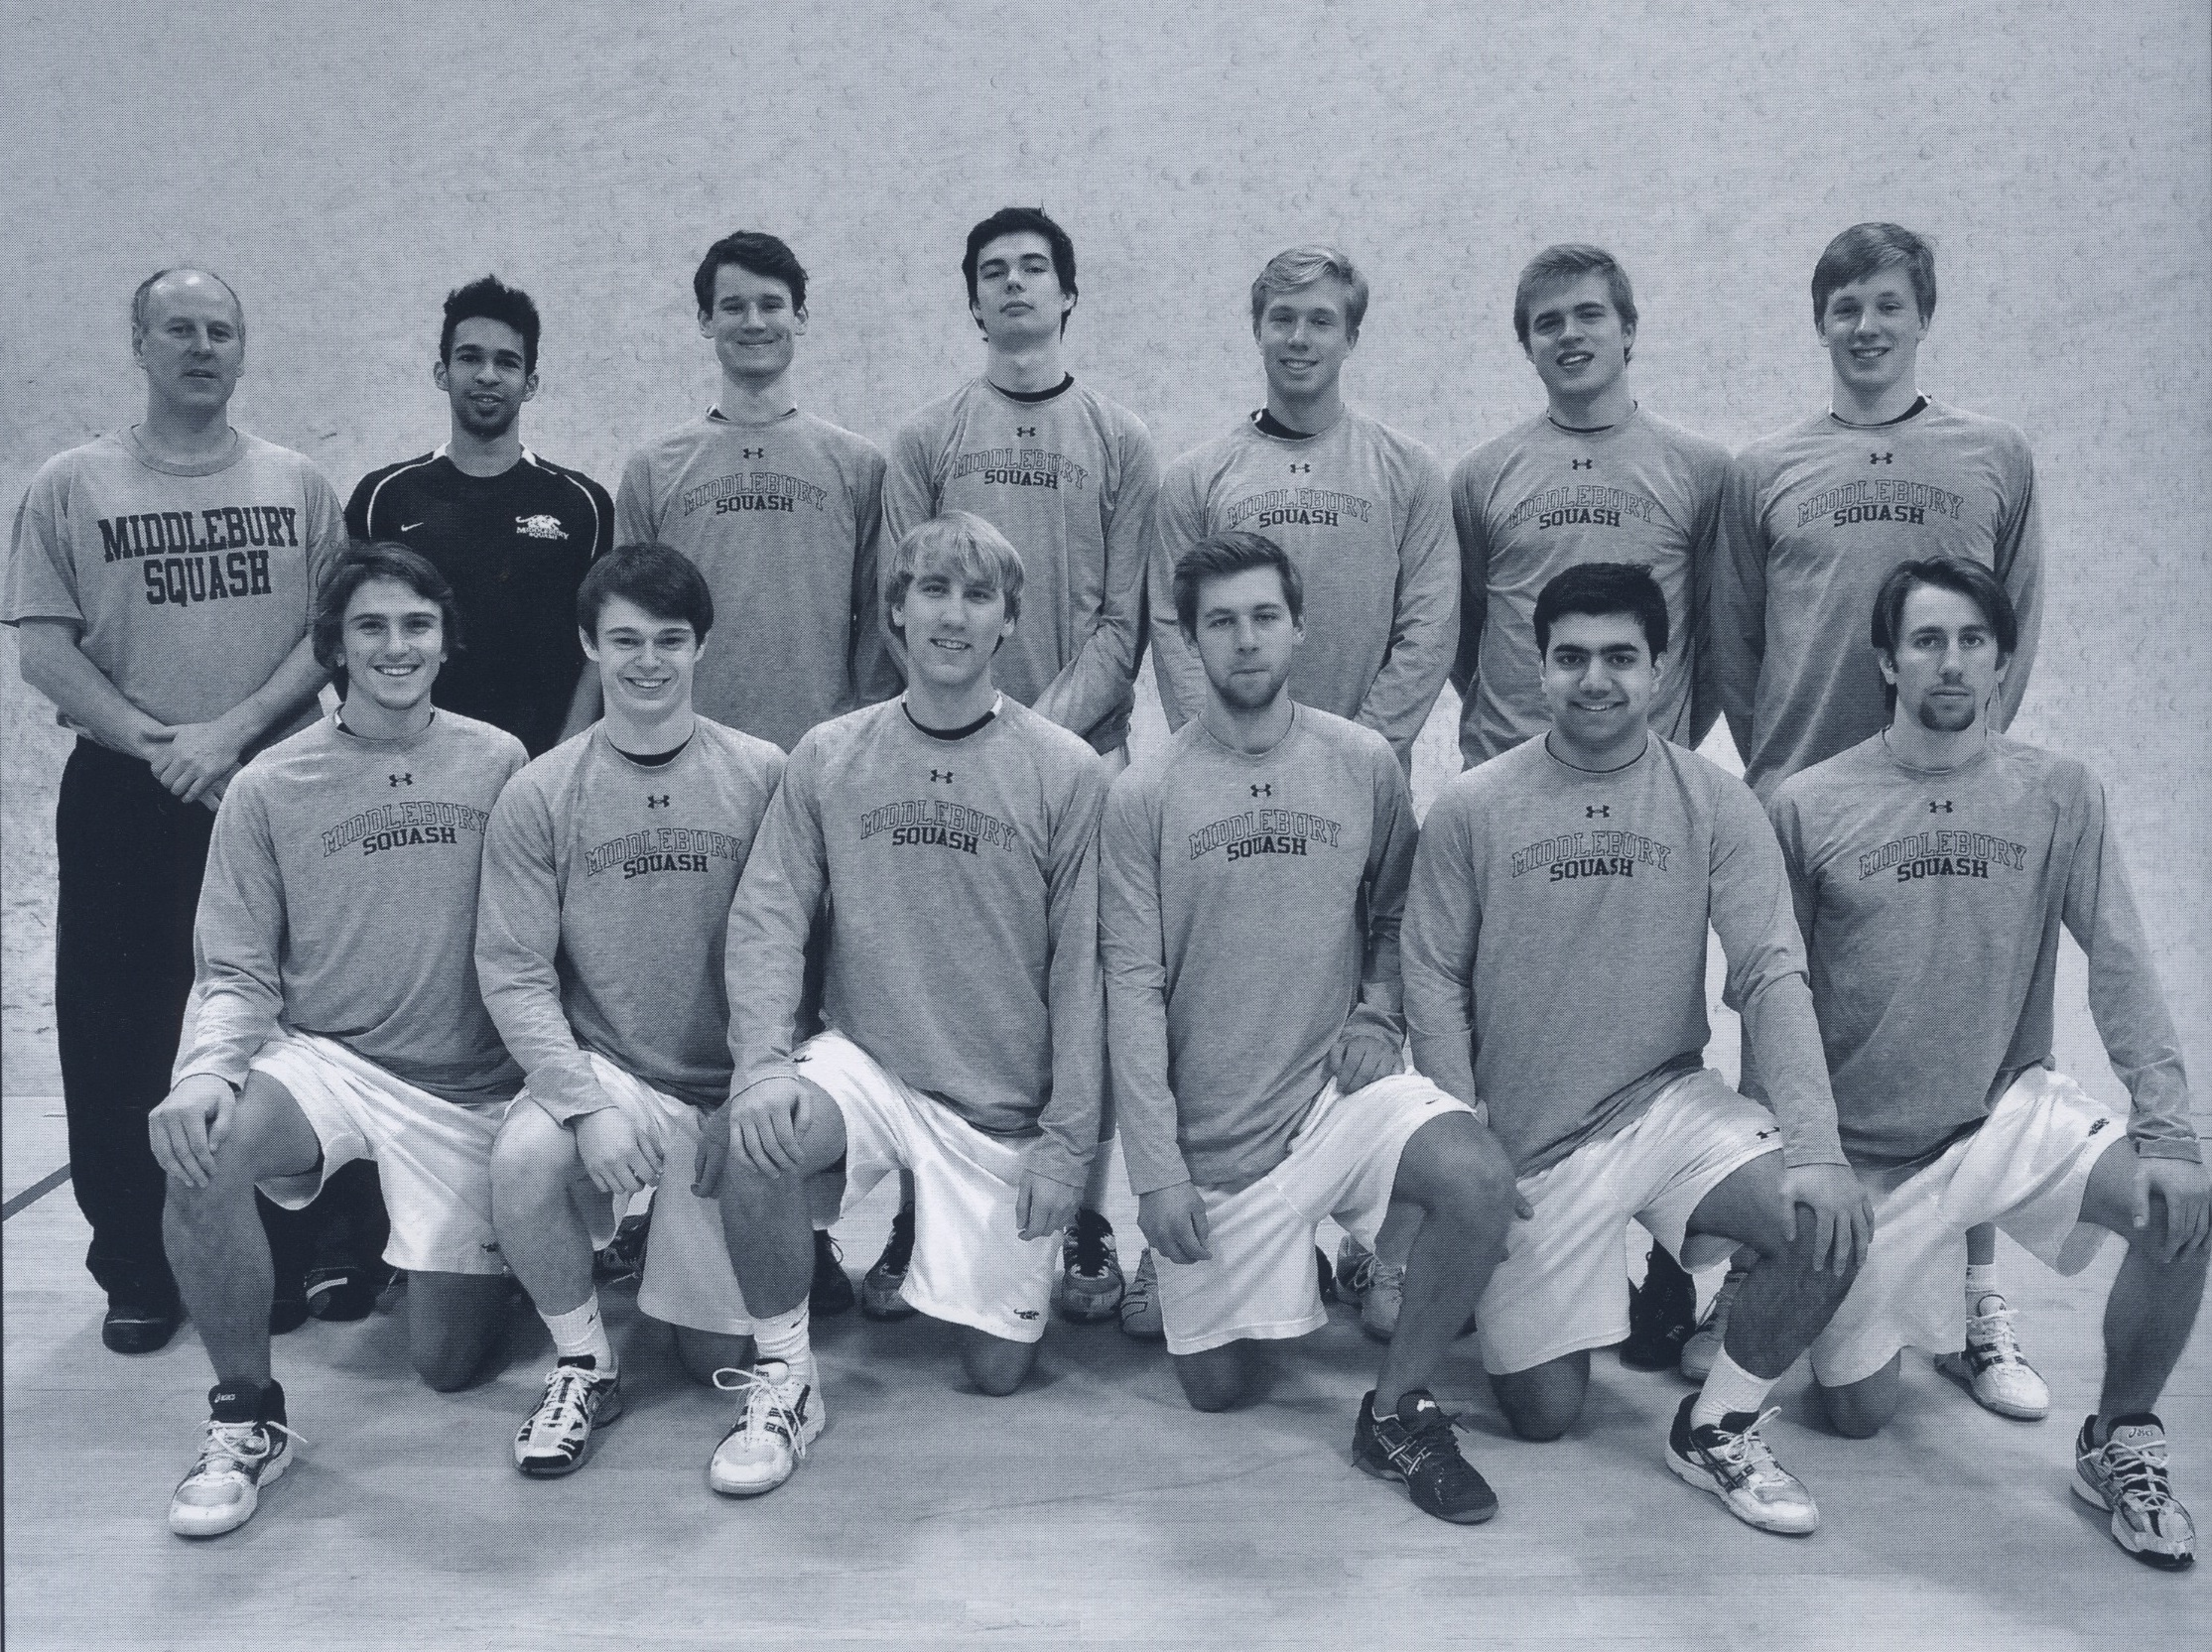 2012 Men's Squash Team, photographed in the Kaleidoscope